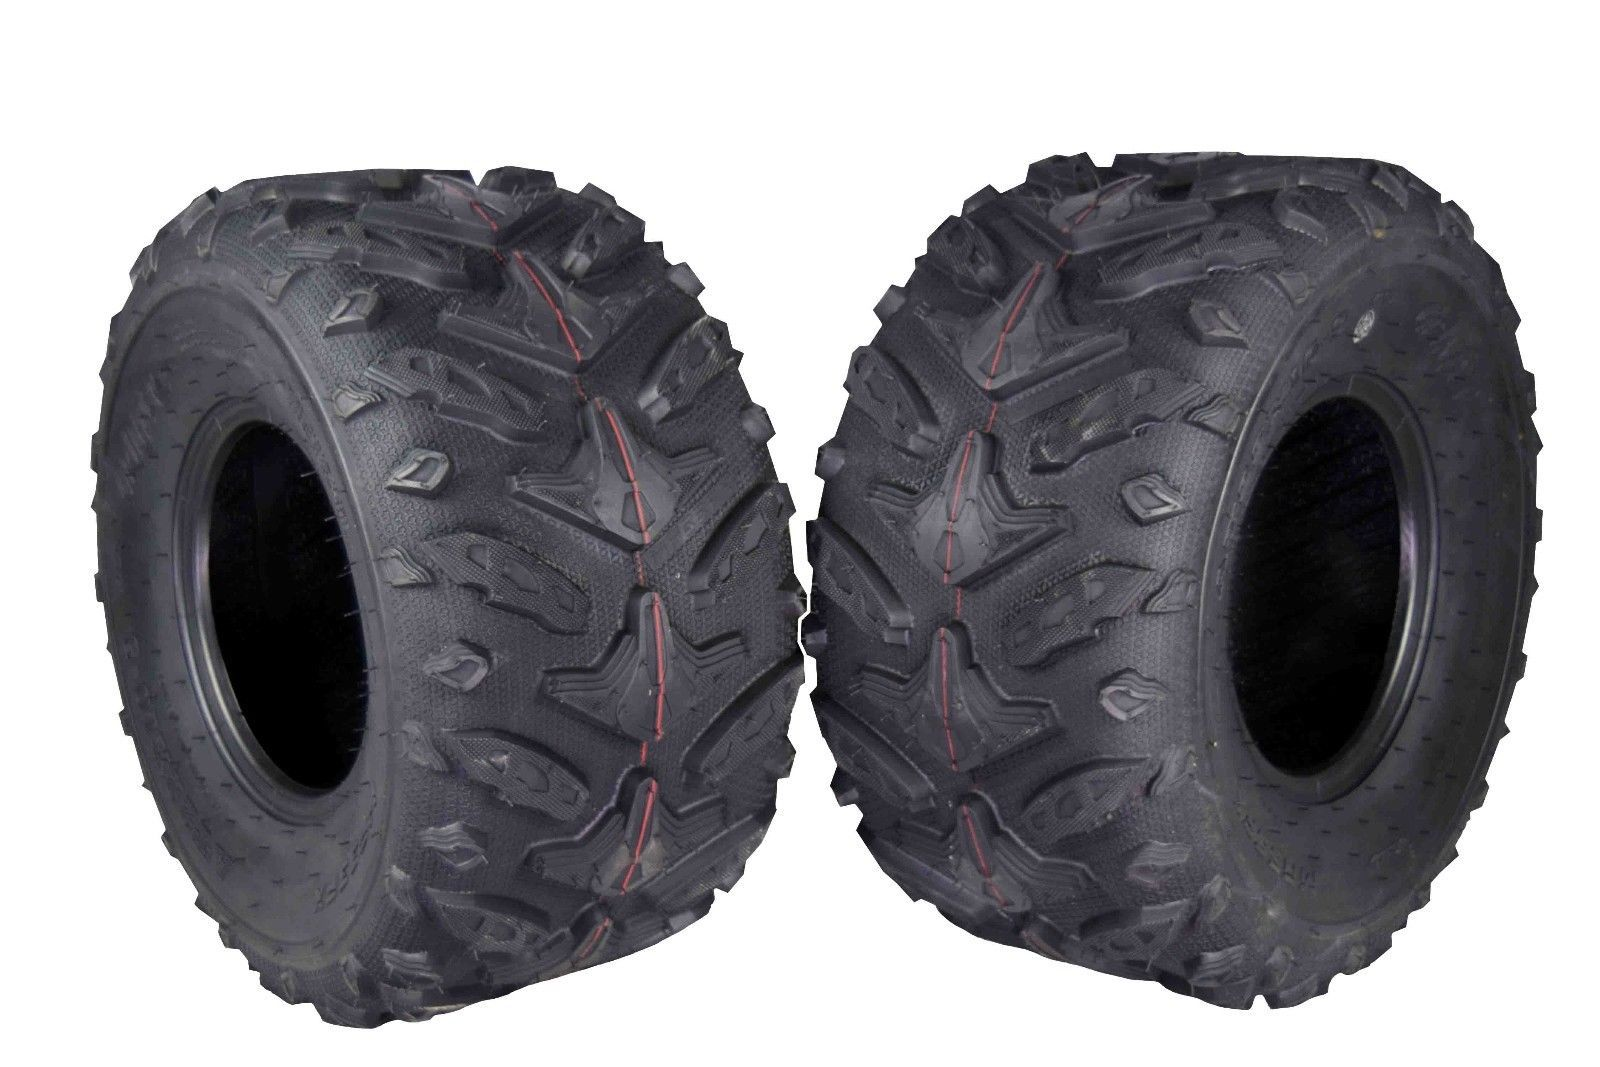 MASSFX-Grinder-22x7-11-Front-22x10-9-Rear-6-ply-ATV-Tires-Set-image-4